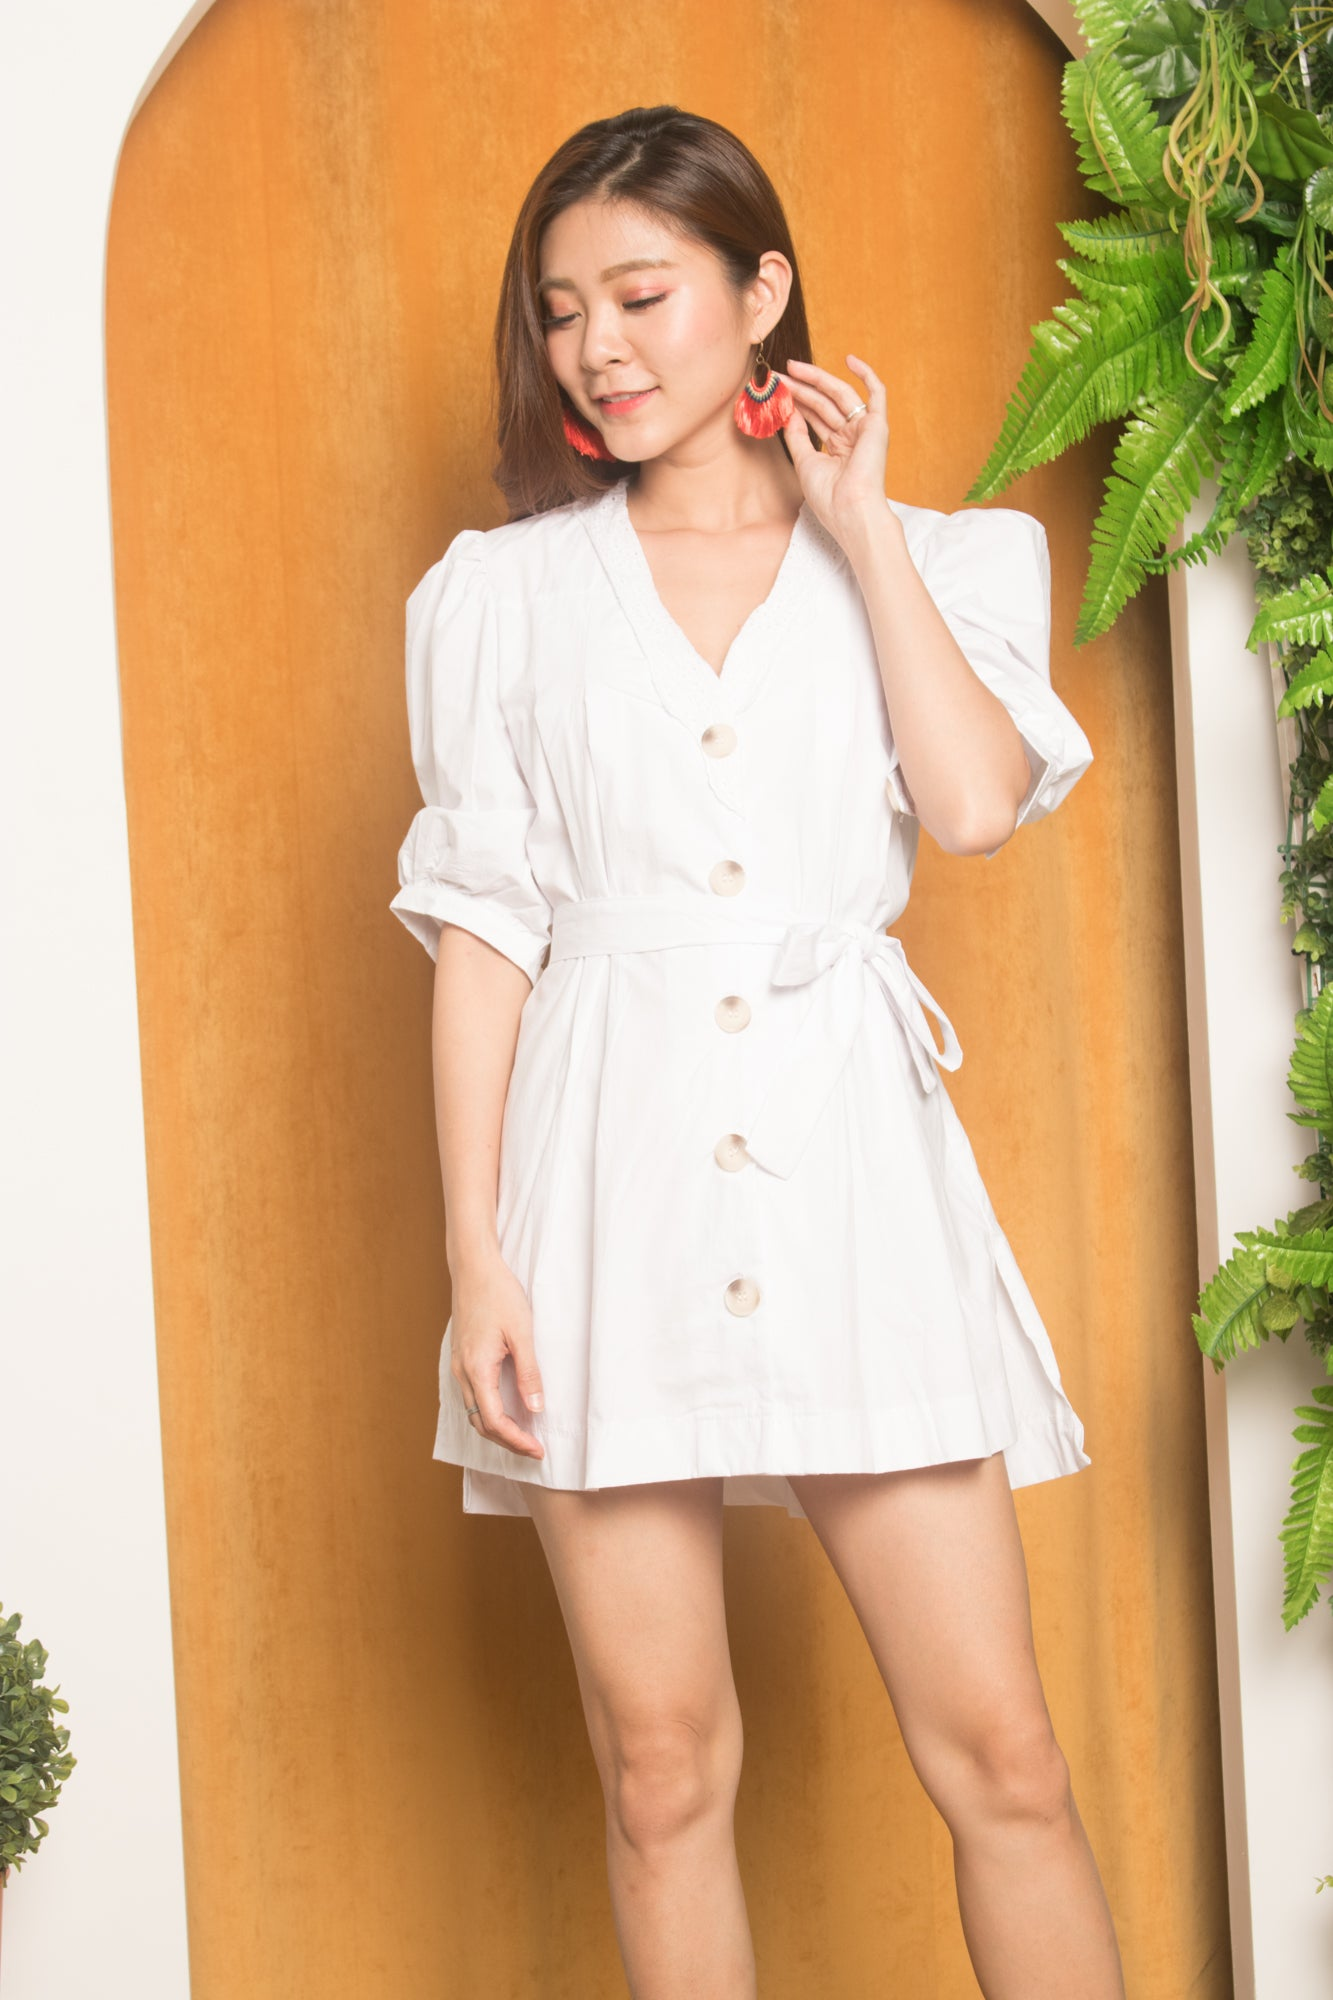 af81842a Meuara Button Down Tunic in White - LBRLABEL